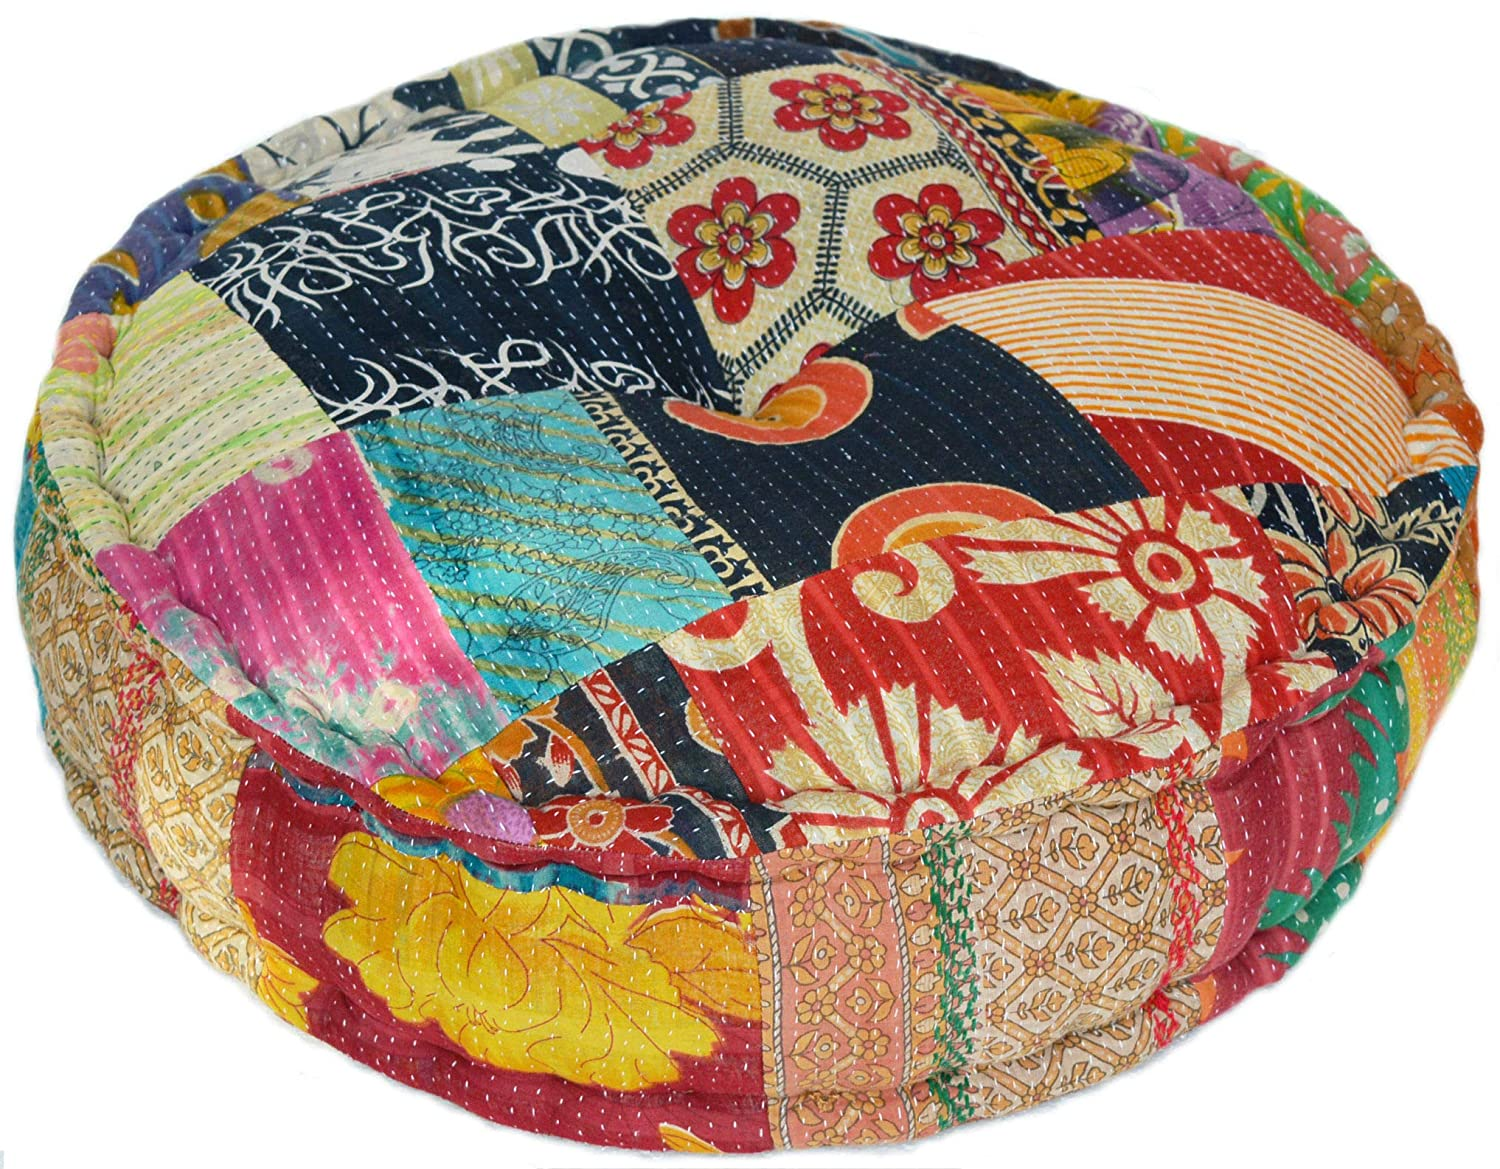 RANGILA Stuffed Indian Vintage Kantha Assorted Patch Floor Cushion; Pouf Ottoman; Round Pouf Marudhara